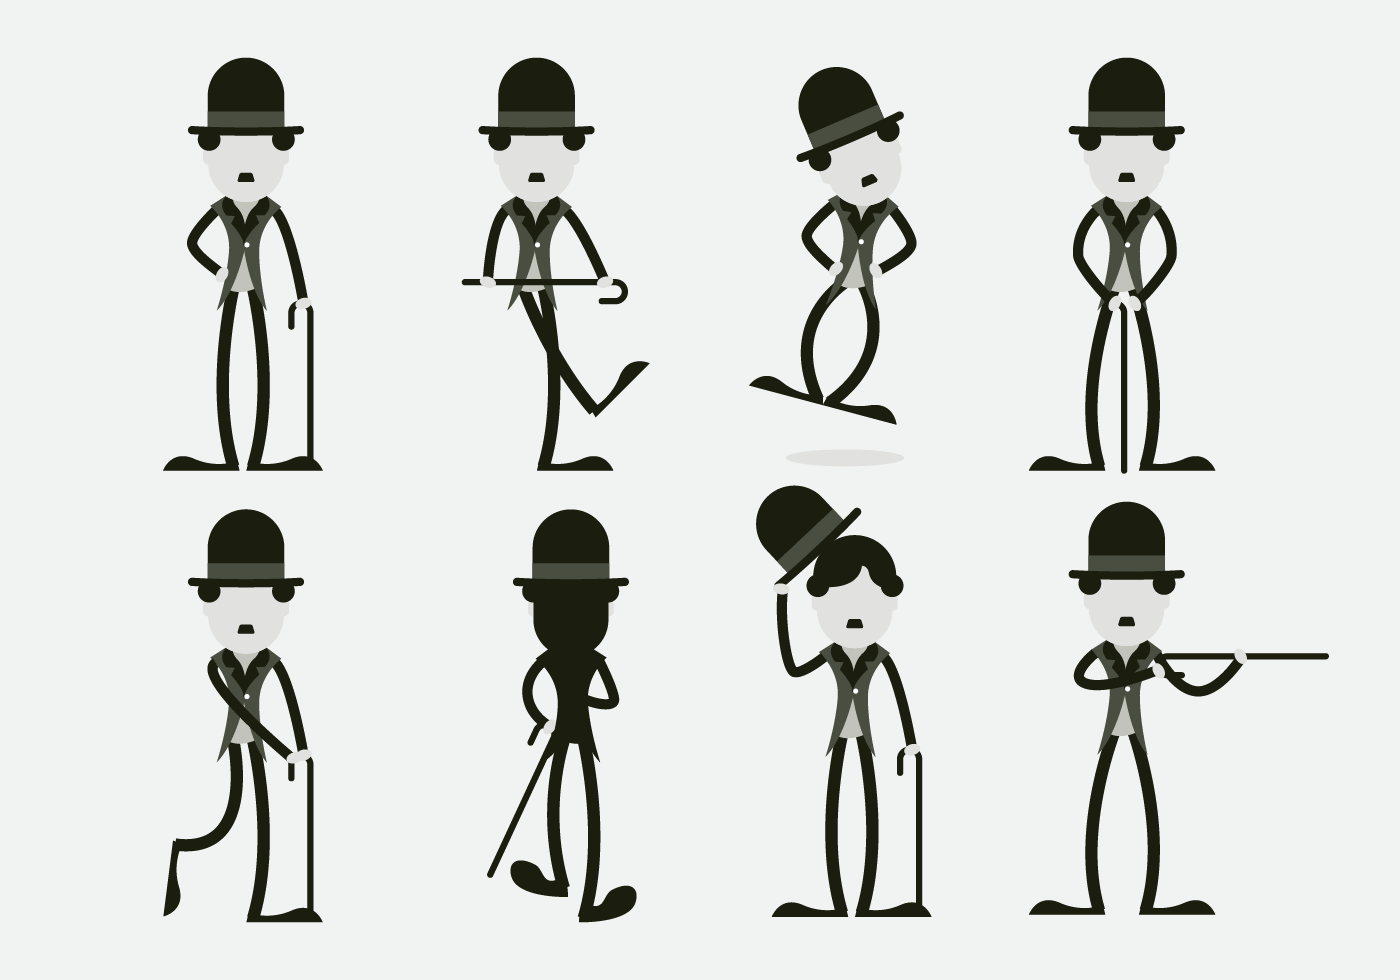 272444950178 besides 39025 further 147434 Funny Charlie Chaplin Character Vector additionally Shadow Flower Wall Decal likewise 22car 20symbol 22. on car shadow